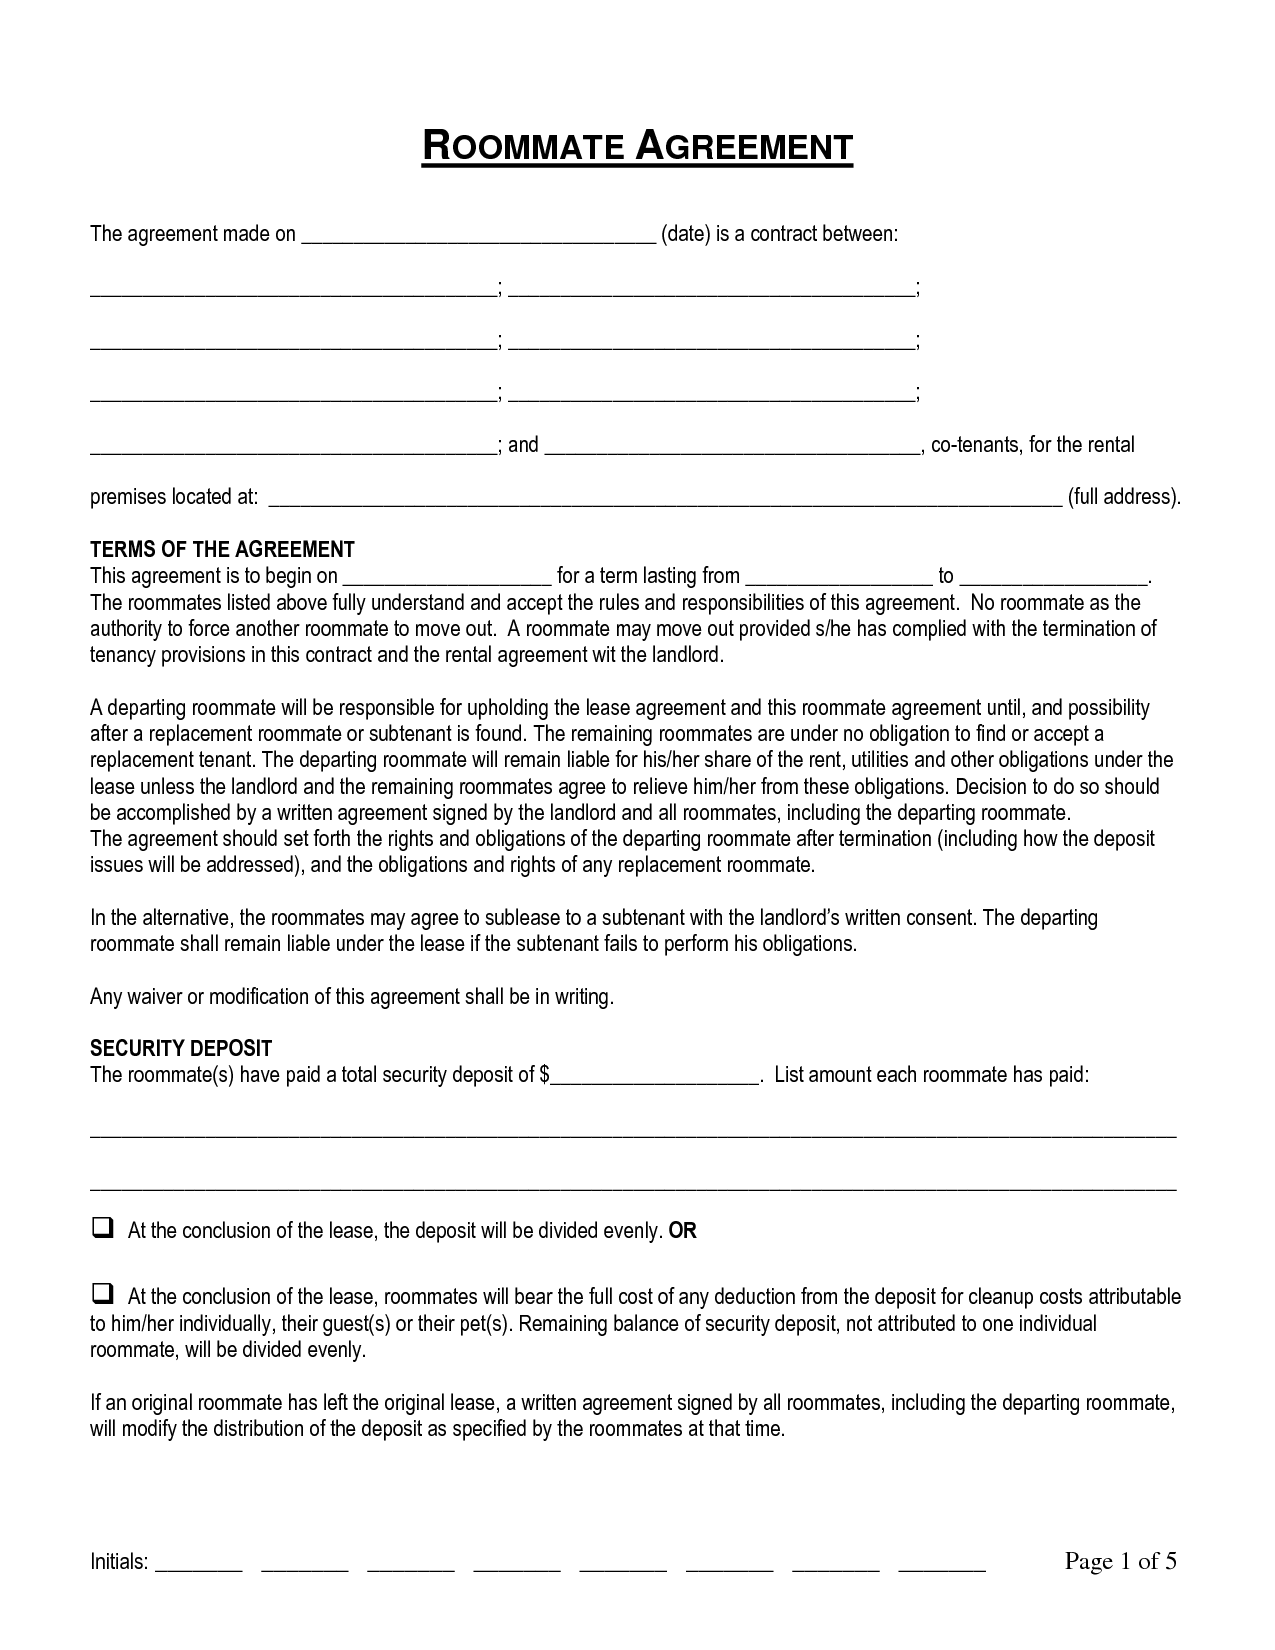 roommate agreement template Termination of Roommate Agreement by pqo69567 - roommate contract ...